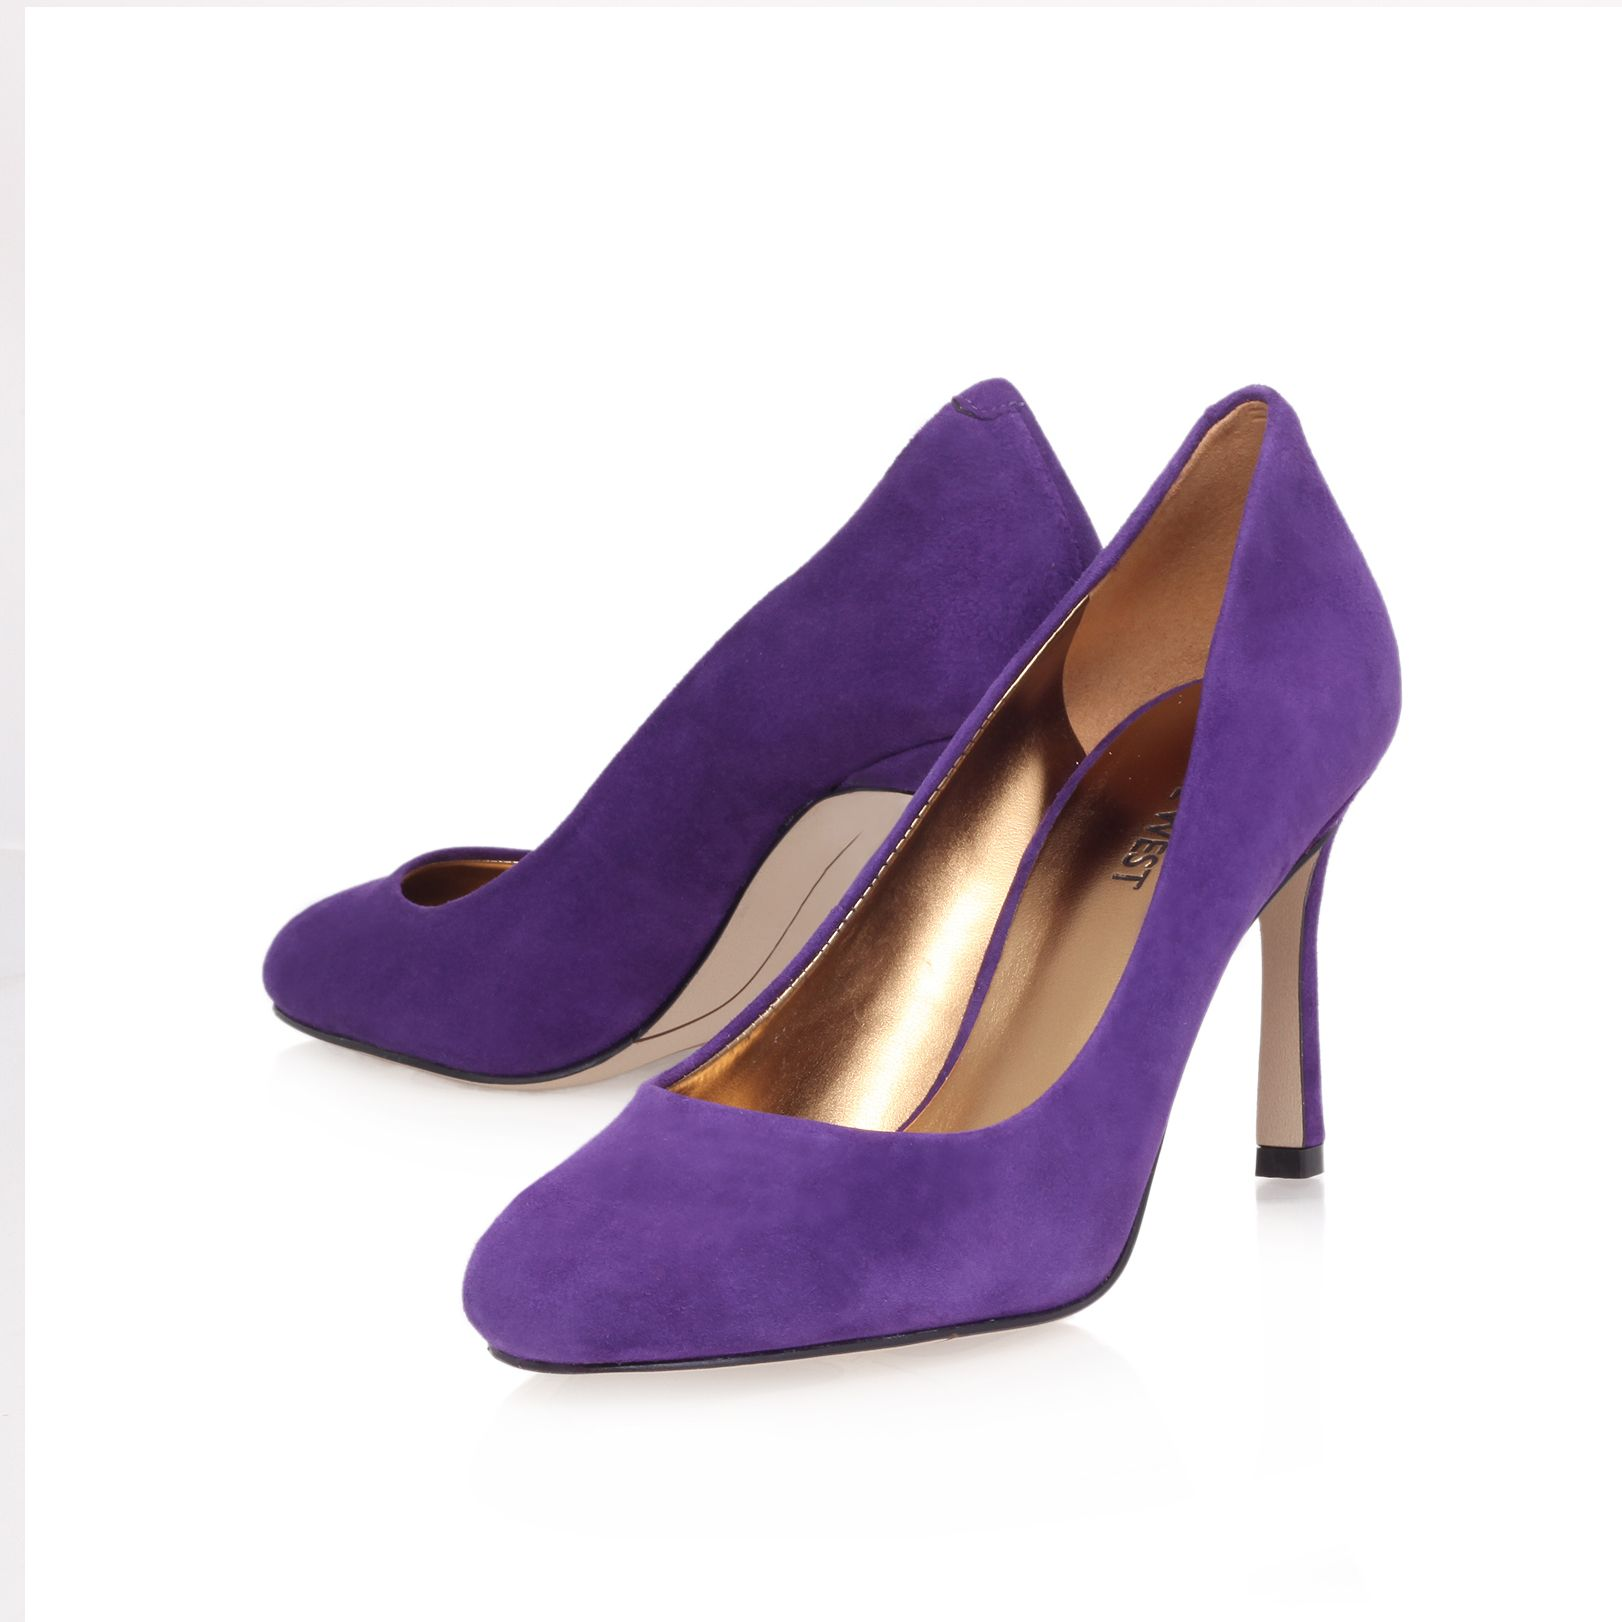 Drusilla mid heel court shoes